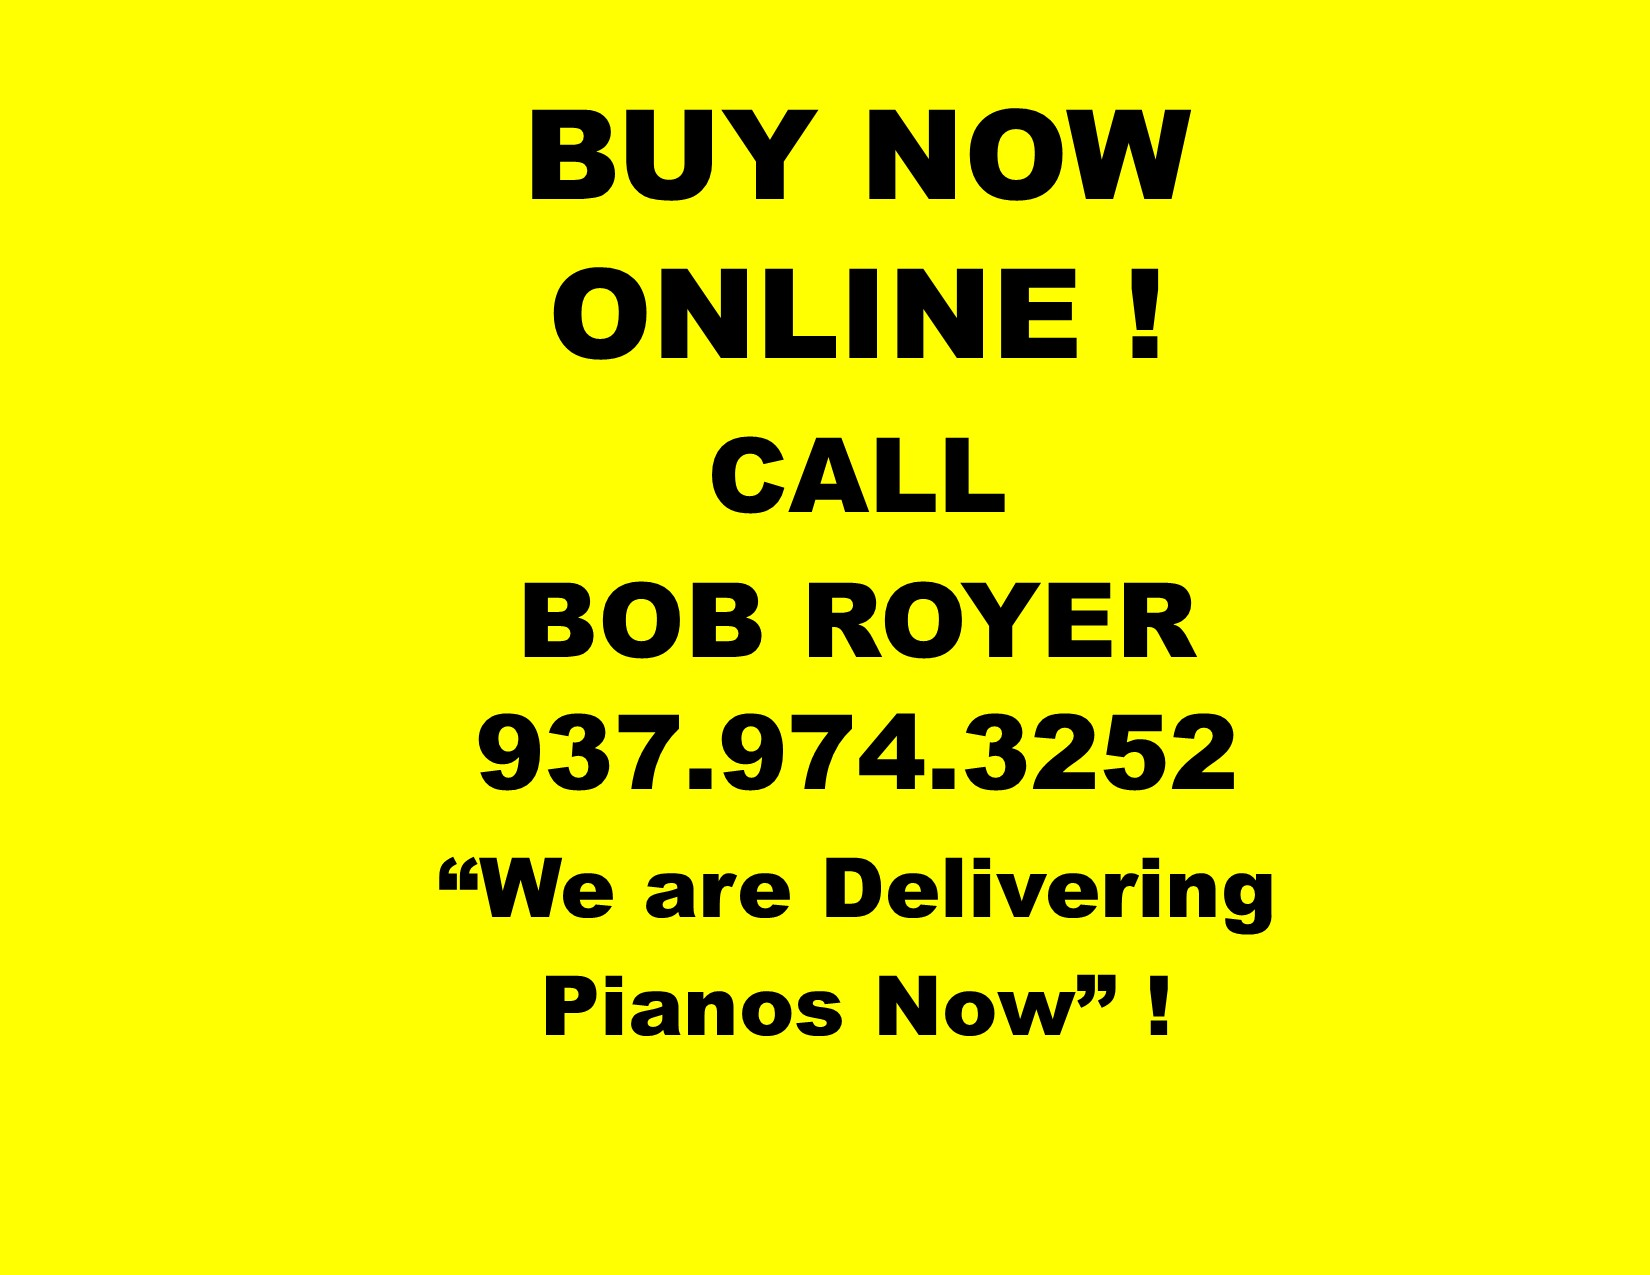 12476- BUY NOW ONLINE ! WE ARE DELIVERING PIANOS NOW !